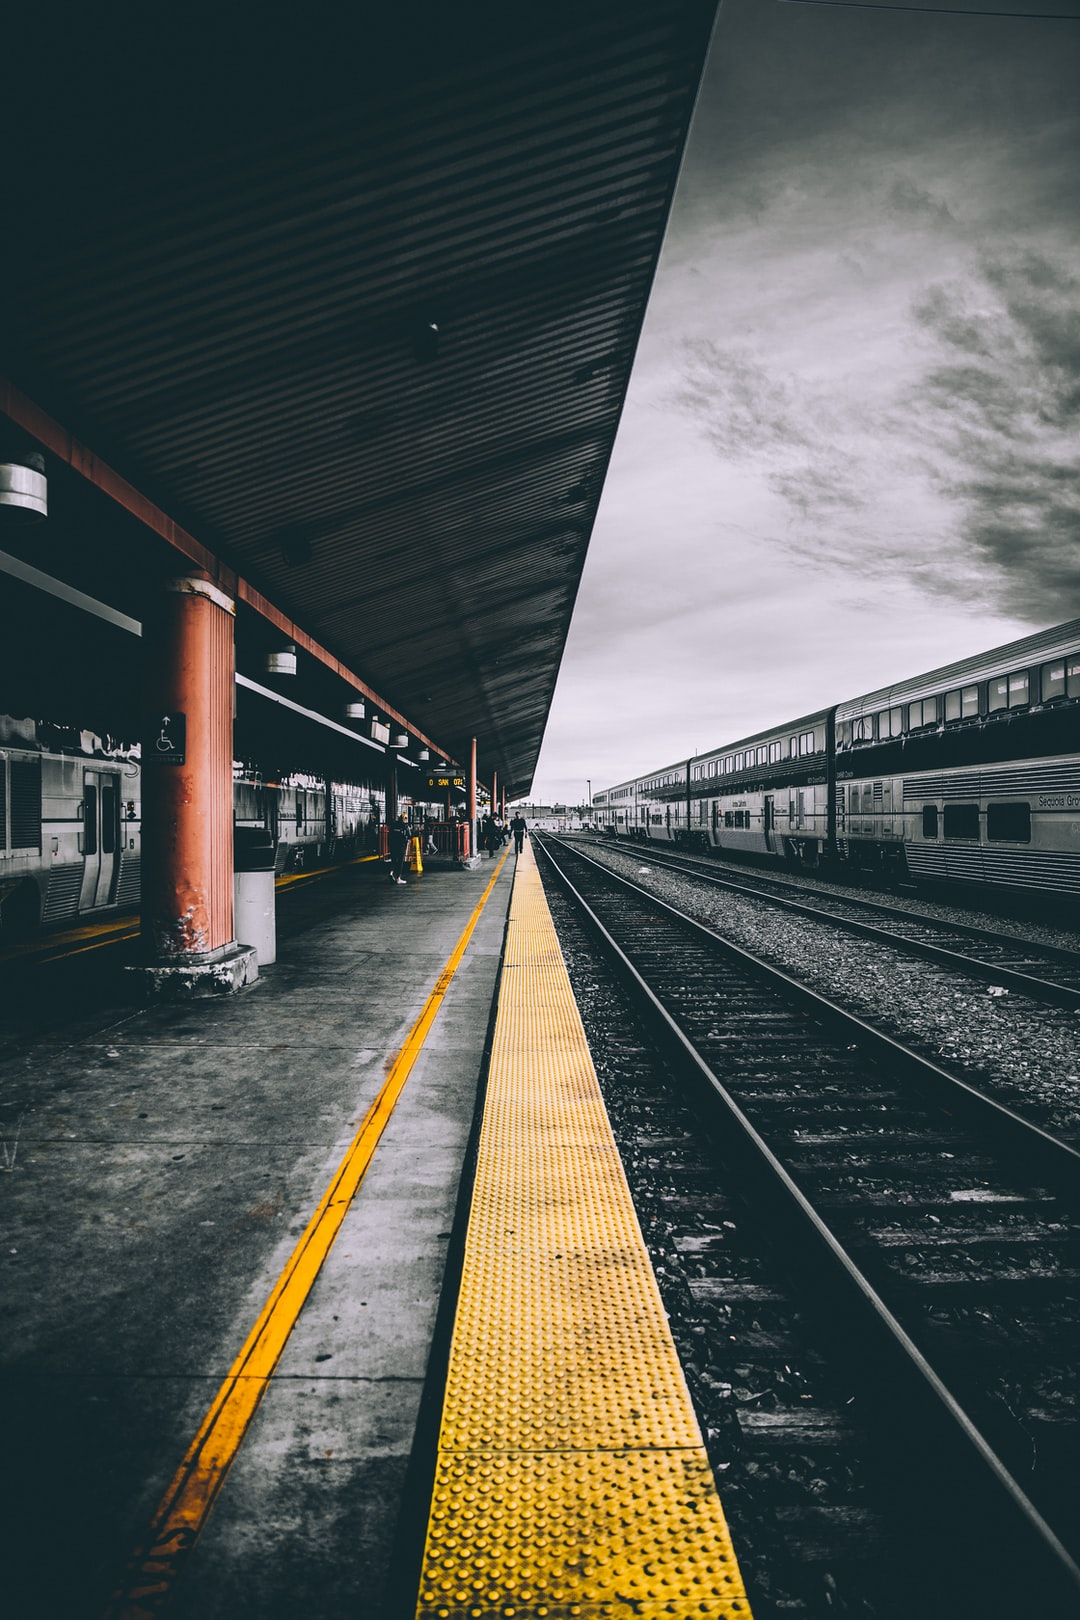 Los in the city. photo by Andre Benz (@trapnation) on Unsplash